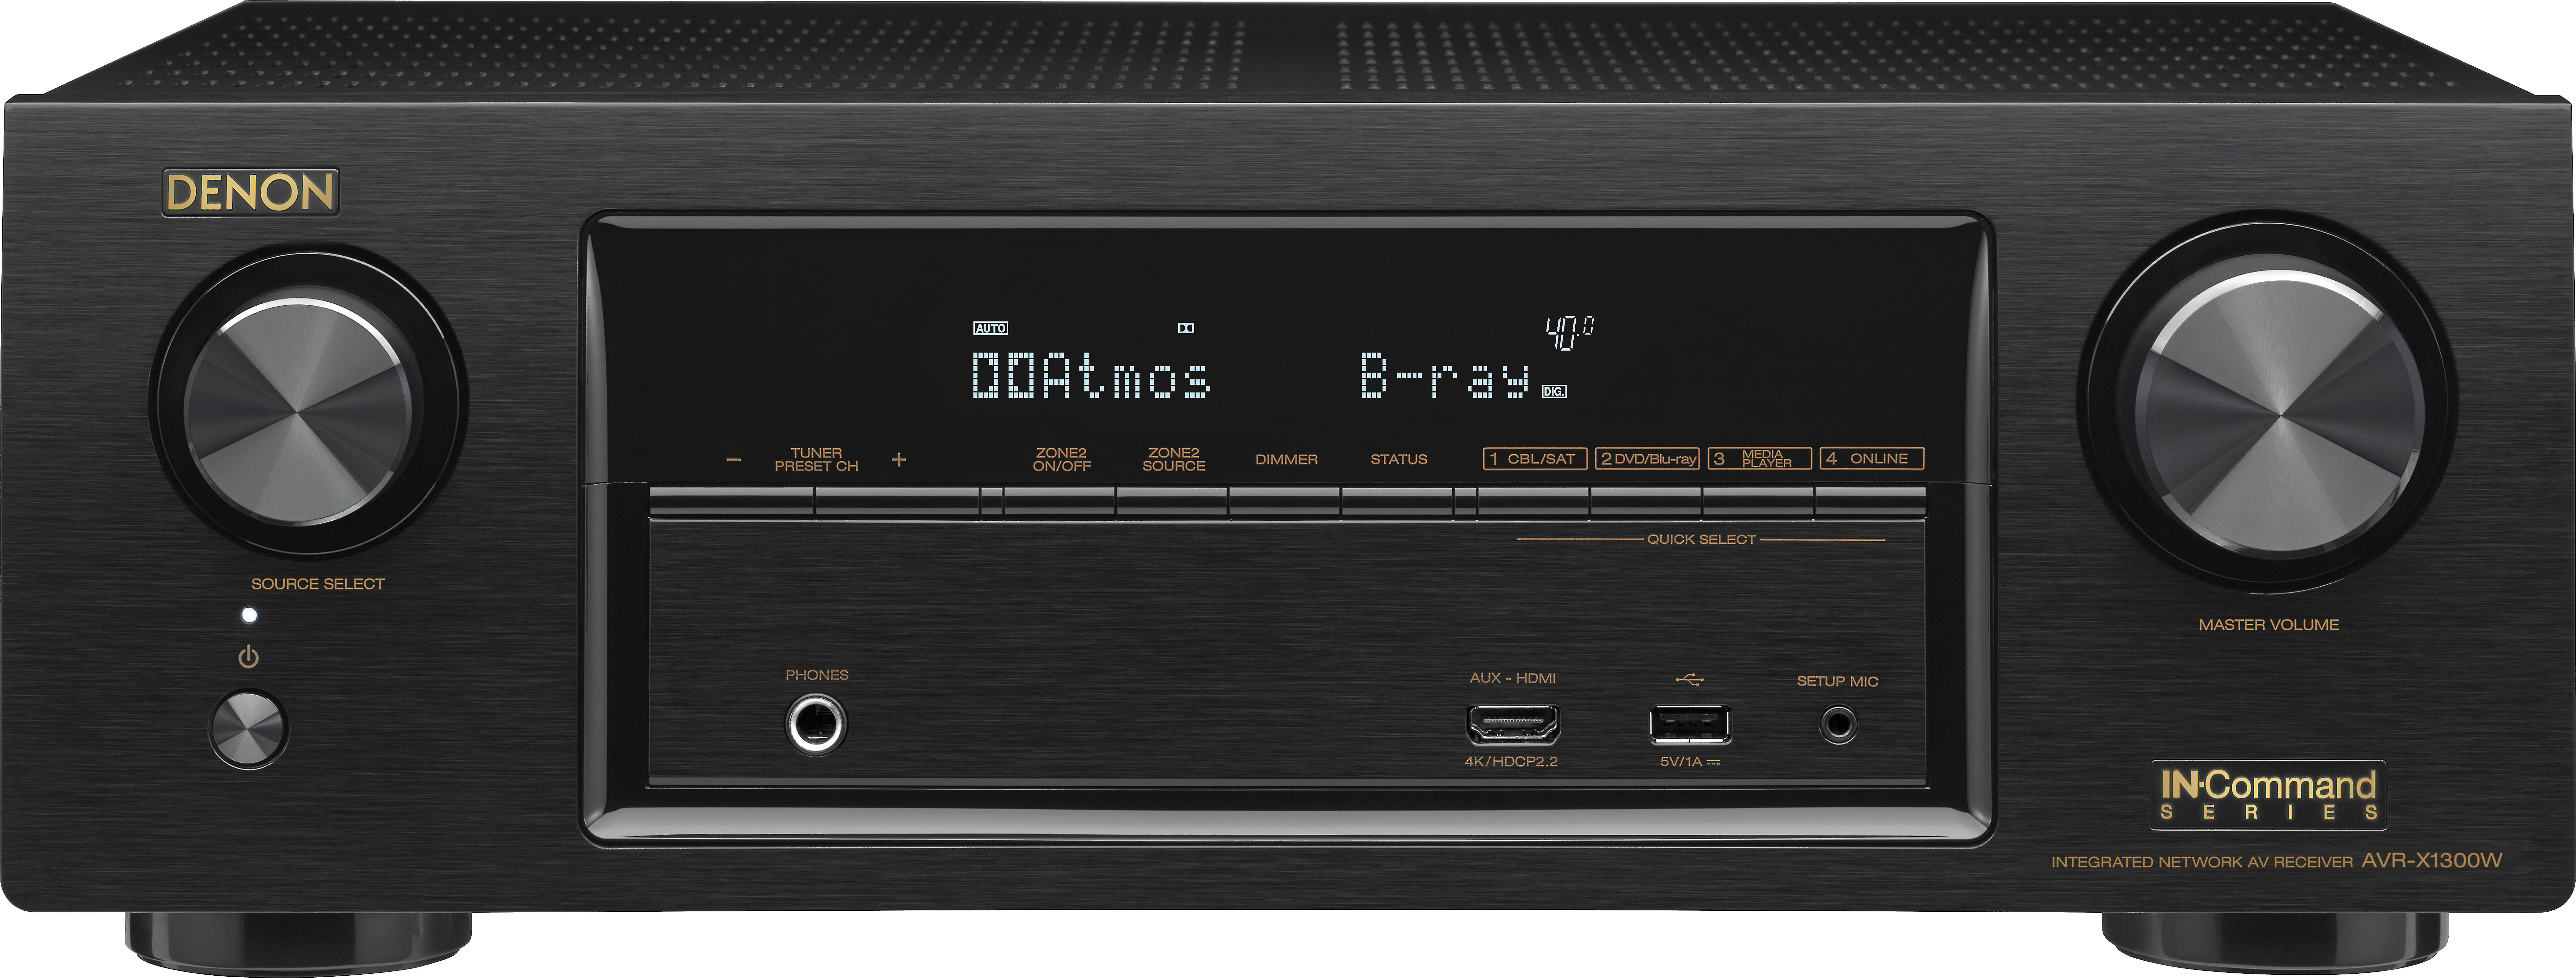 bd36562f7fa Denon AVR-X1300W 7.2-channel home theater receiver with Wi-Fi®, Bluetooth®,  Apple® AirPlay®, and Dolby Atmos® at Crutchfield.com